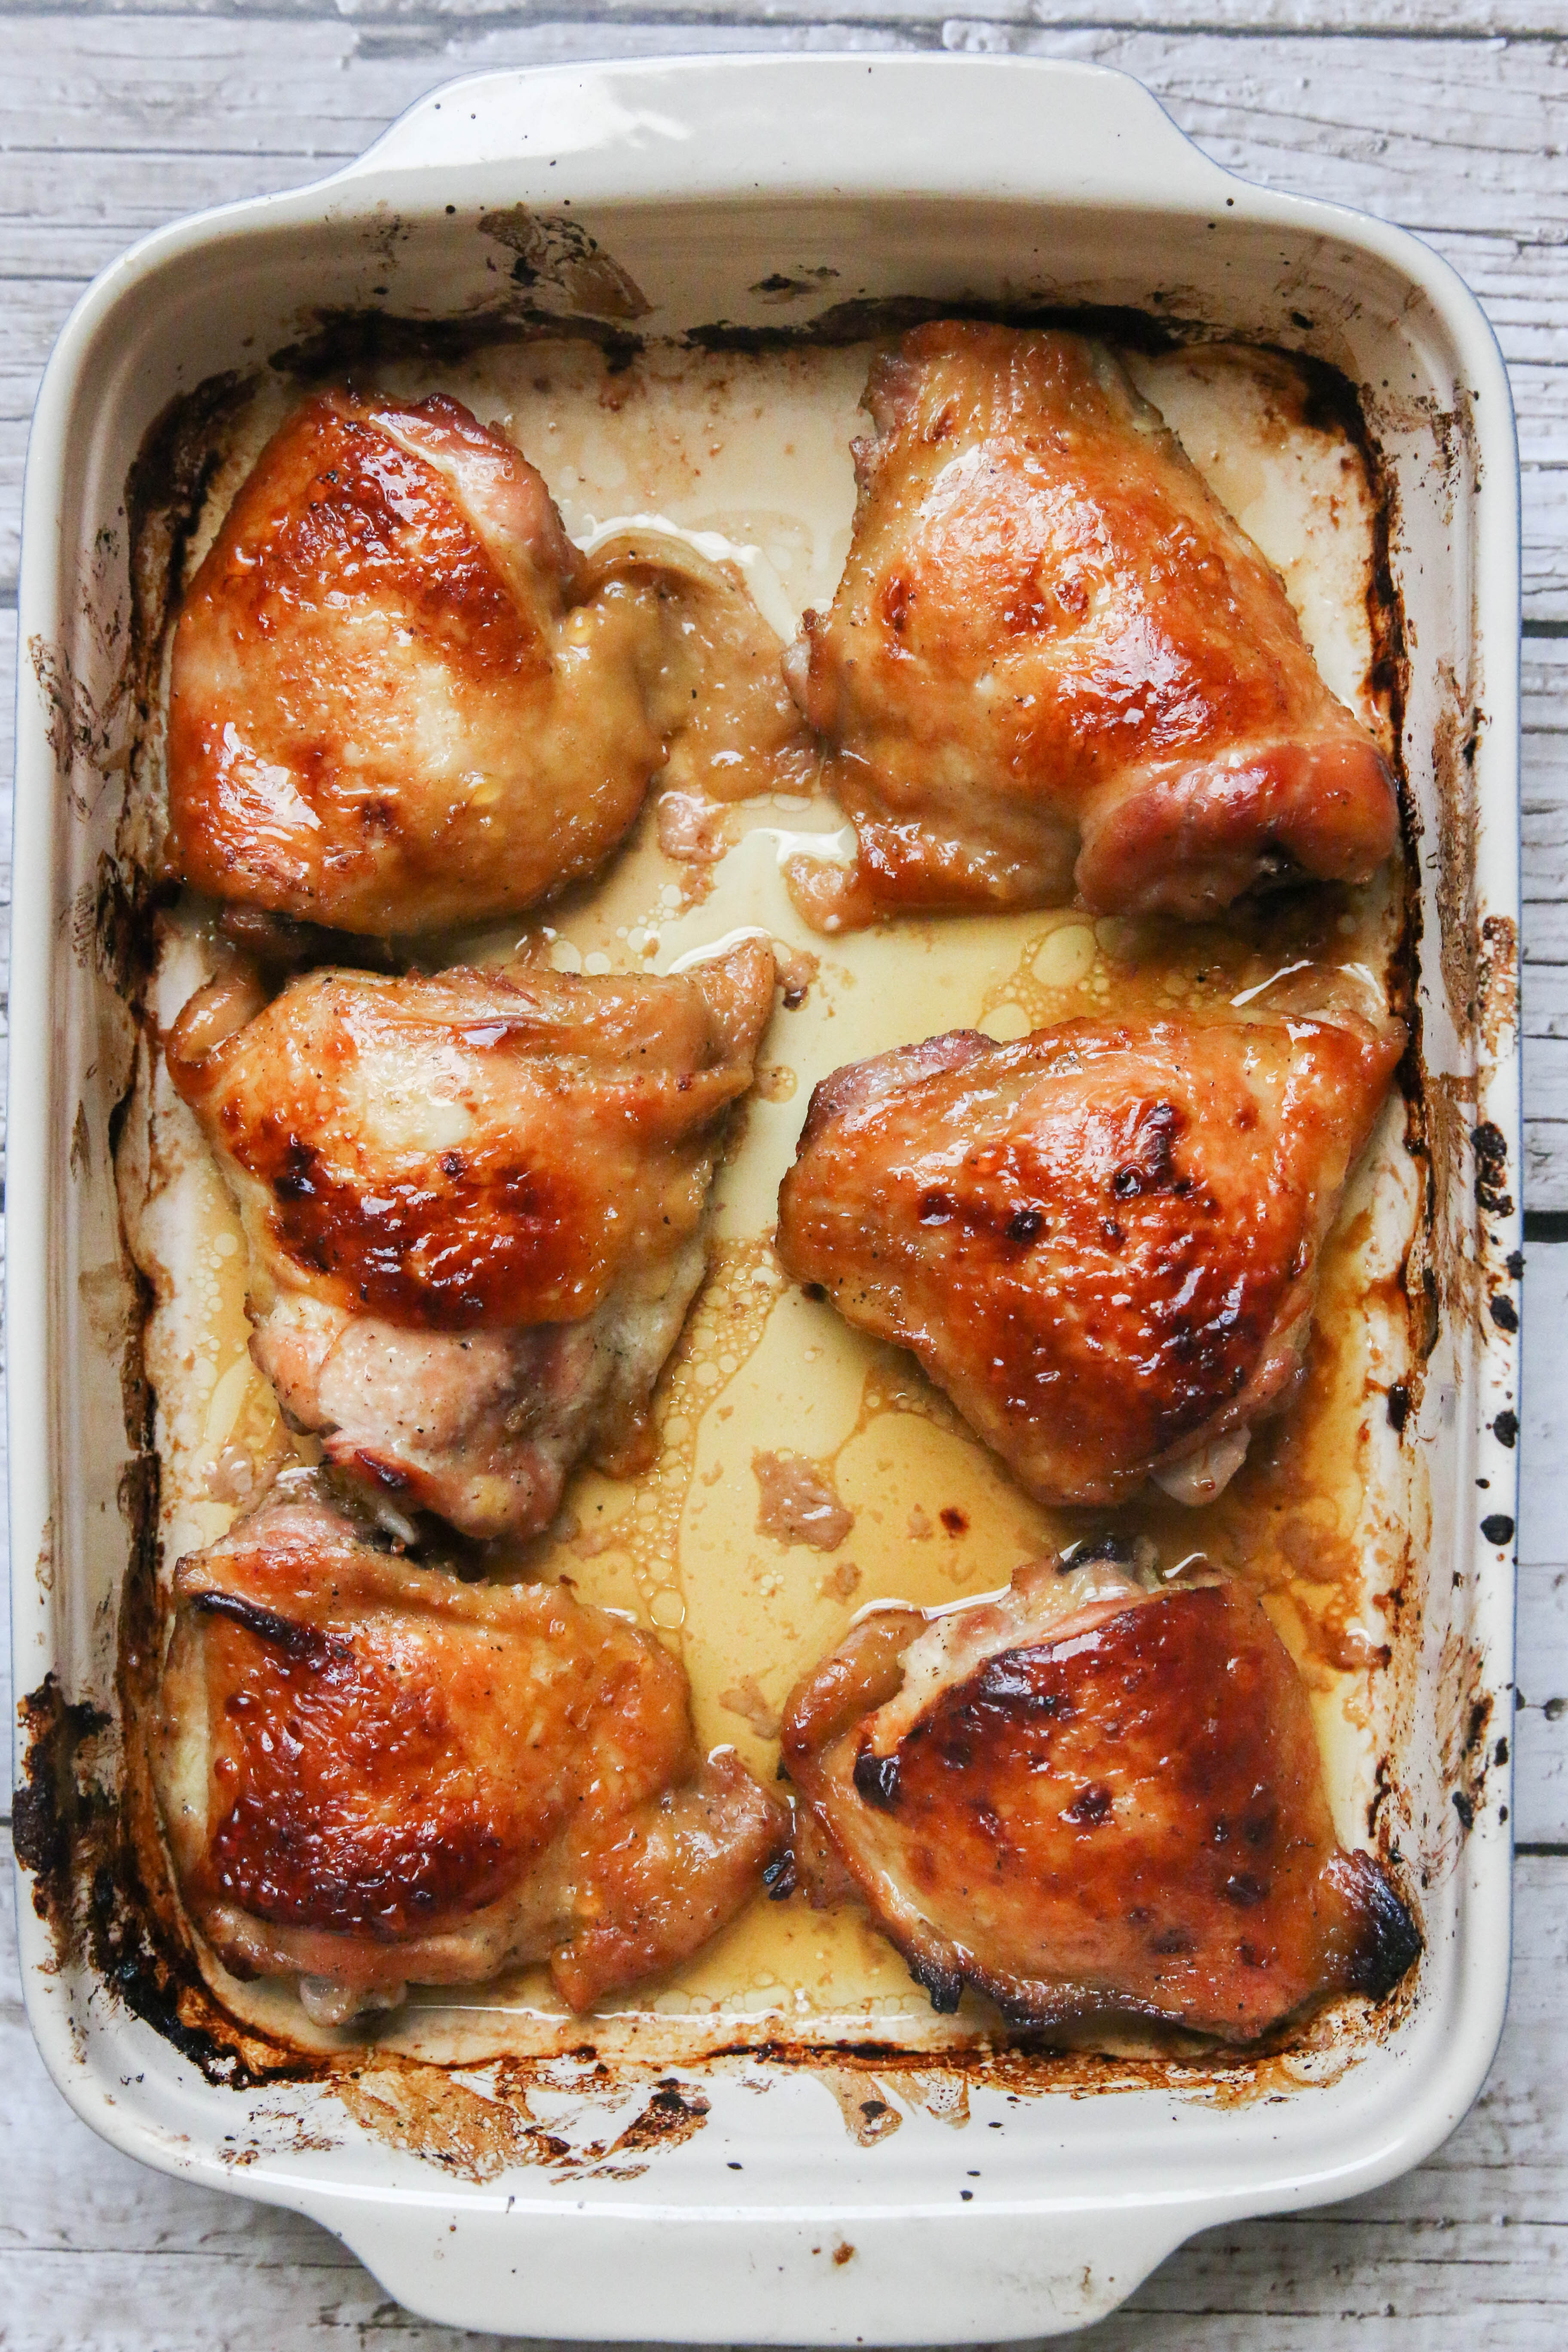 The Marinade For This Chicken Is A Balance Of Sweetness From The Honey And Saltiness From The Coconut Aminos The Soy Part Of The Recipe And Salt